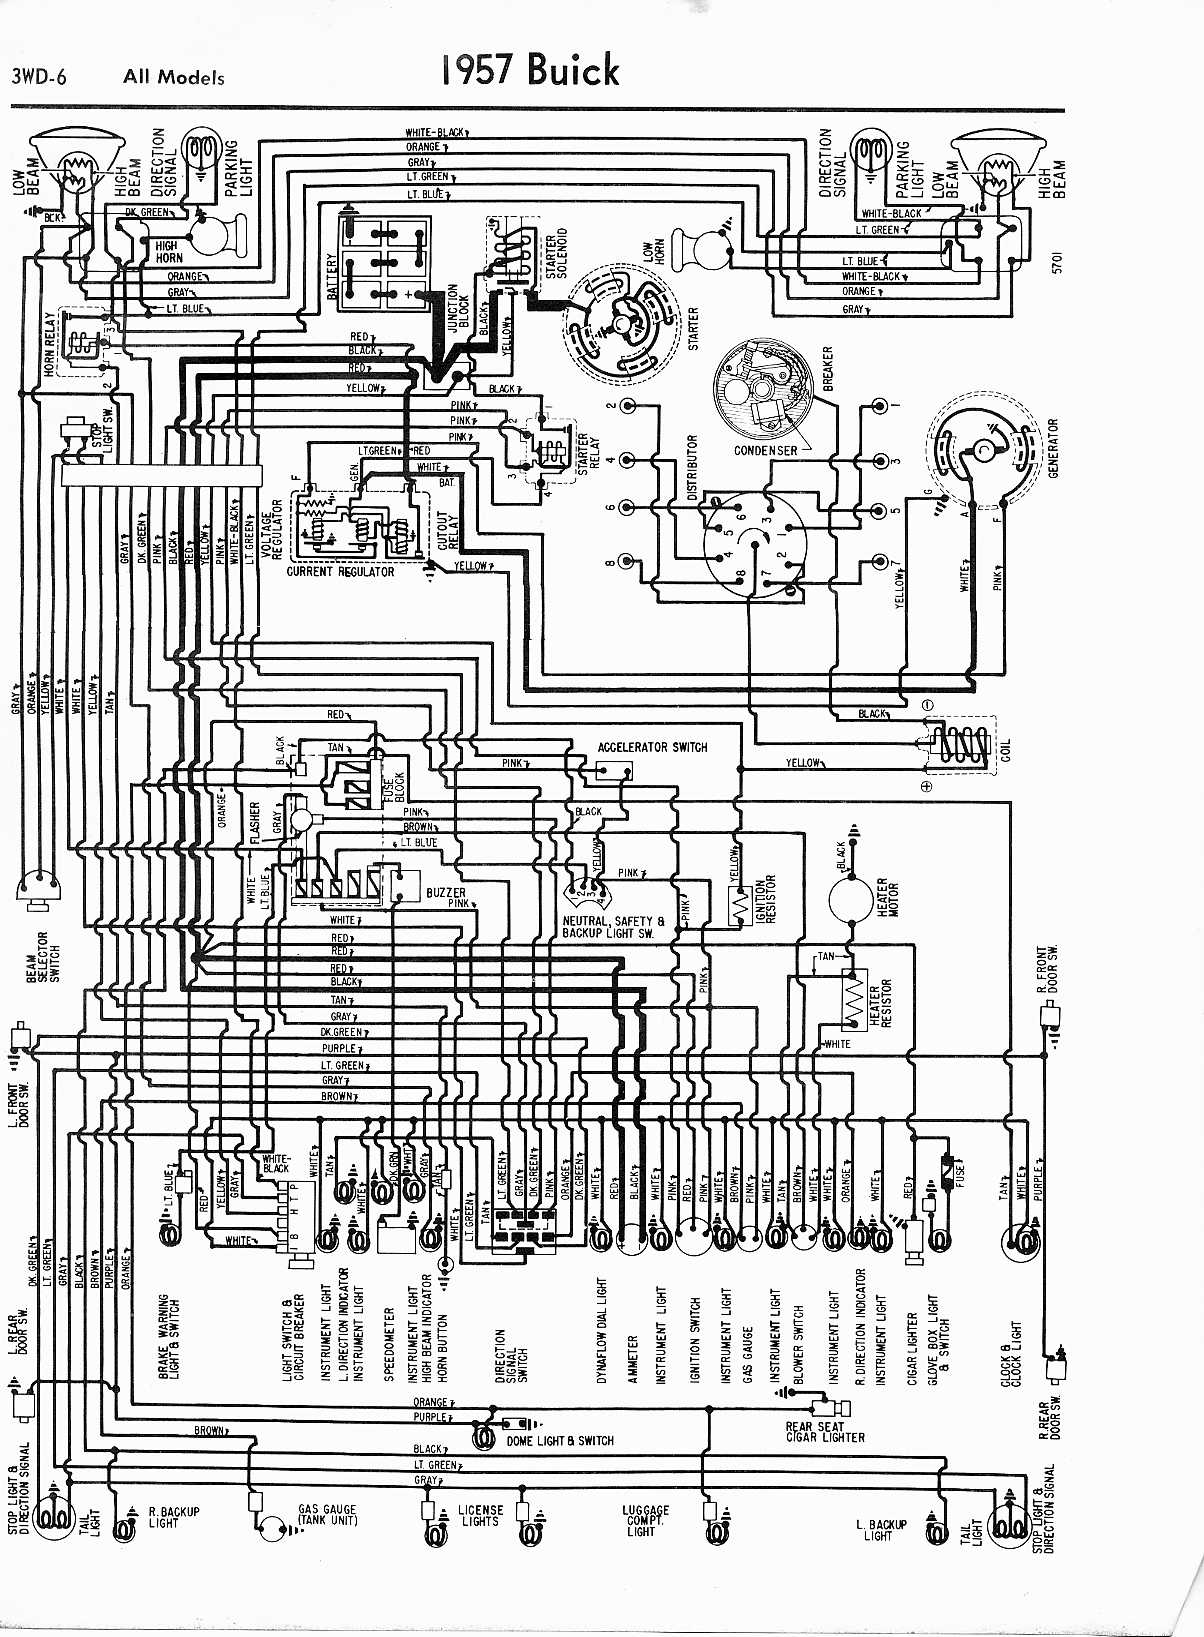 96 Buick Regal Wiring Diagram Detailed Schematics 1999 Jeep Cherokee Crankshaft Sensor 1957 Wire Data Schema U2022 Ignition Switch